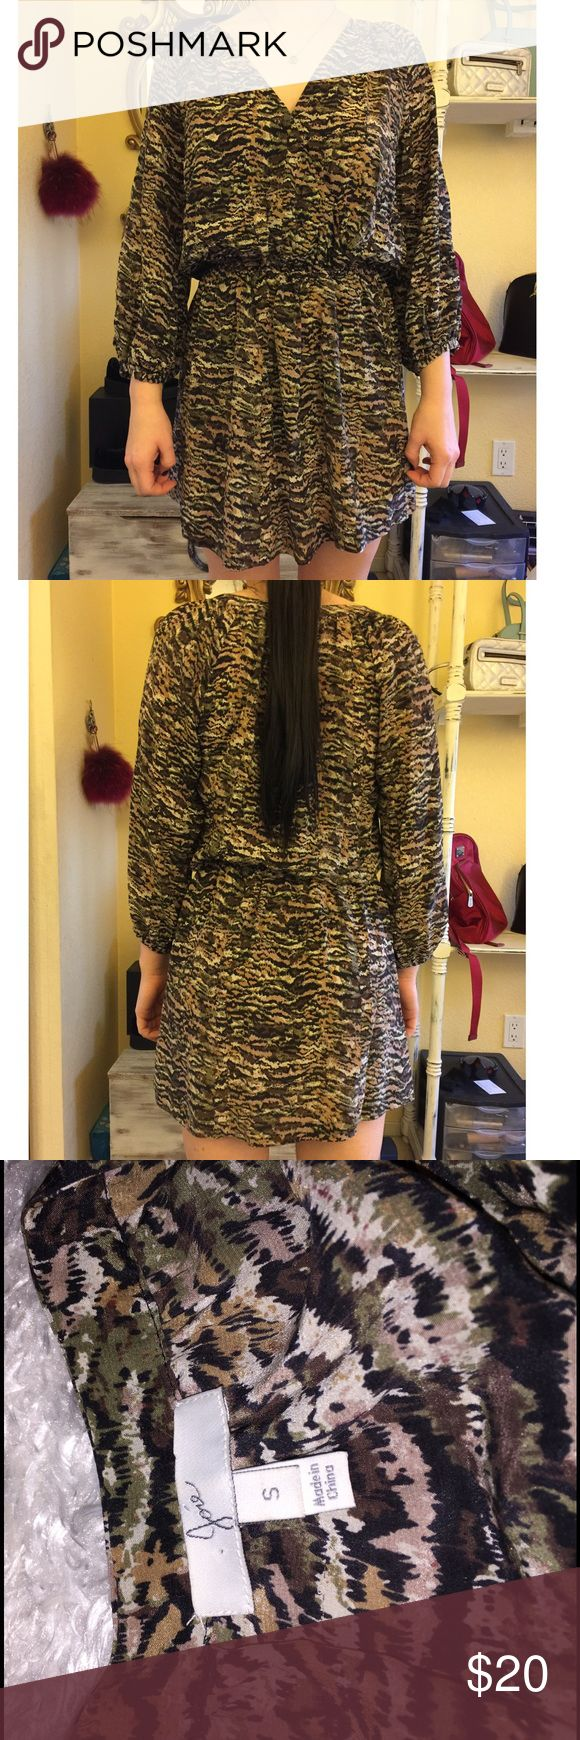 Joie Flowy Patterned Dress Size S, like new! Perfect for many occasions! Feel free to ask any questions! 🔥 Joie Dresses